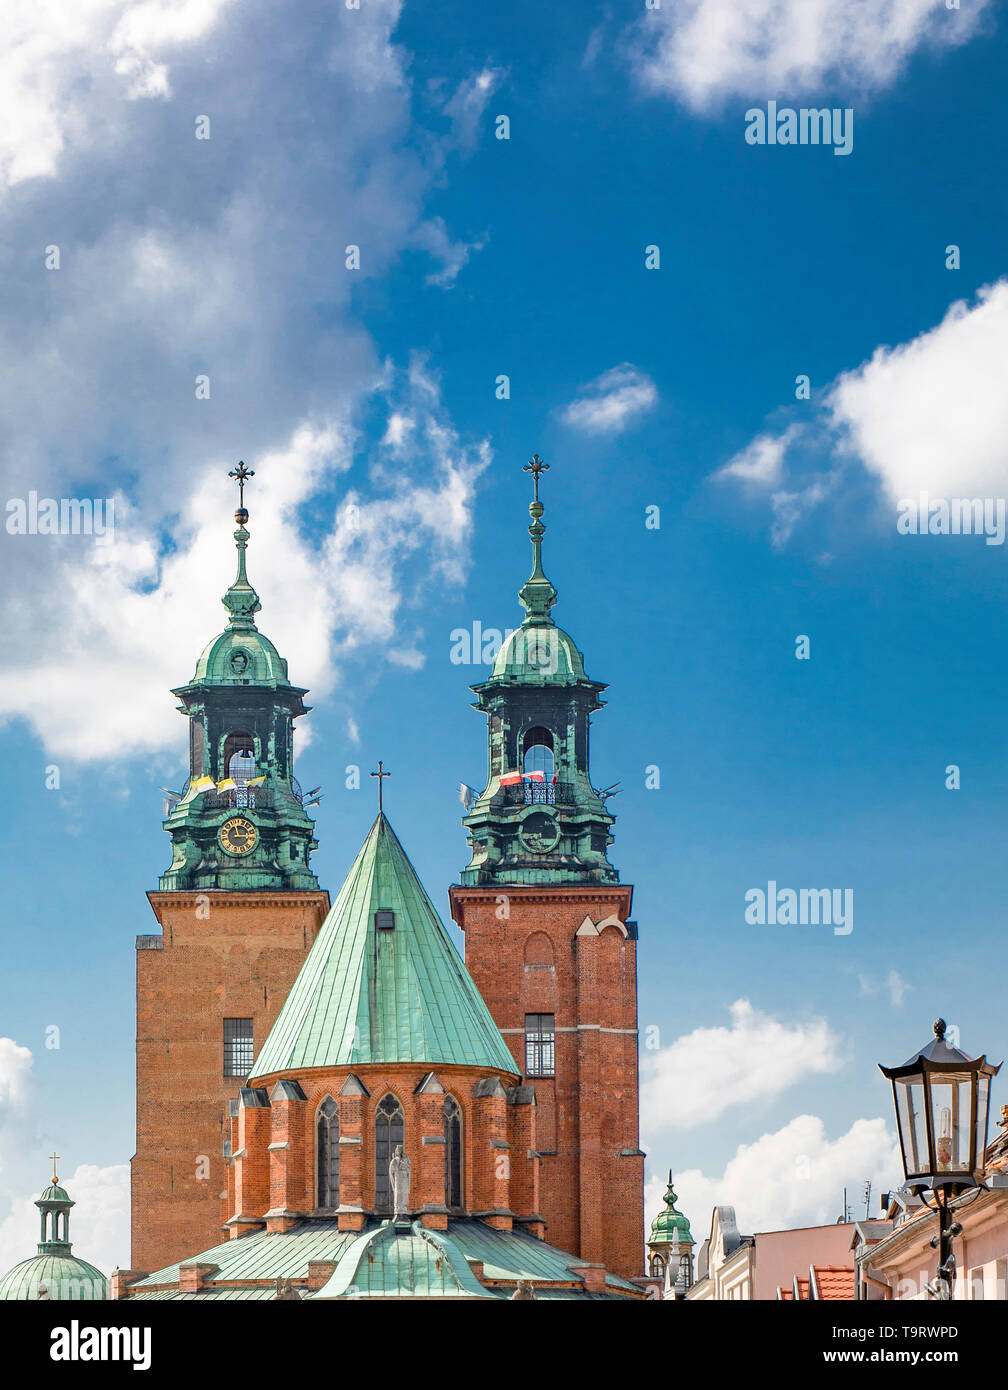 Gniezno / Poland -  Old town buildings, Cathedral and cityscape - architecture of the first capitol of Poland. - Stock Image